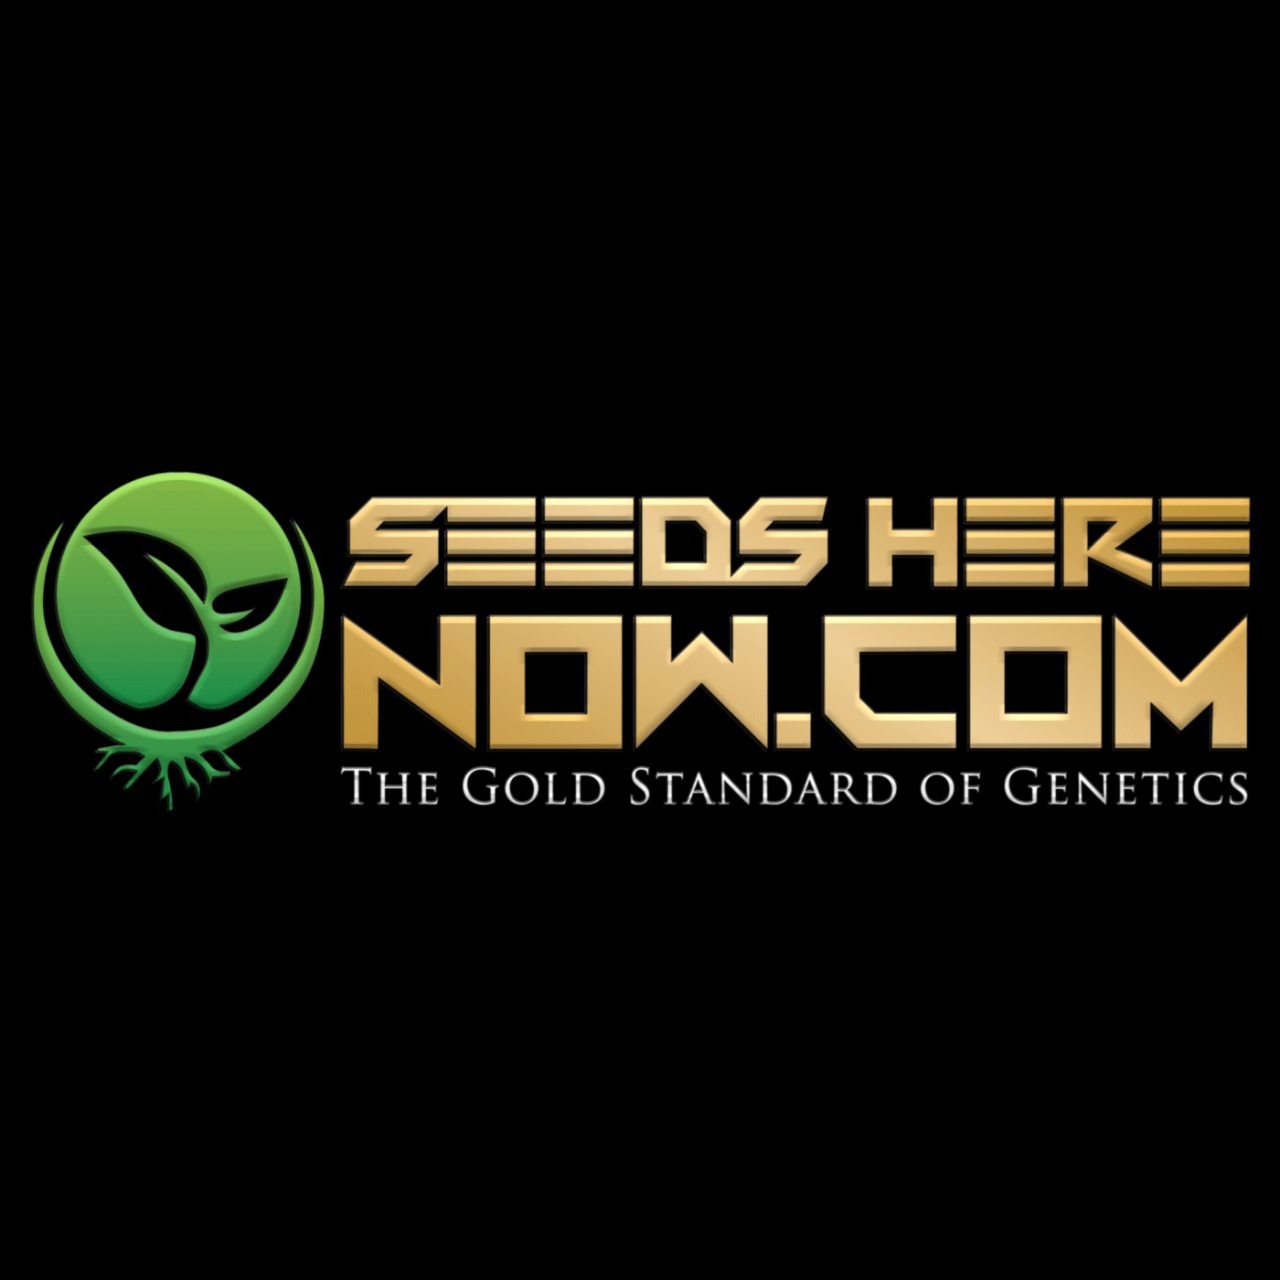 Seeds Here Now - Reviews | Seed Bank Magazine